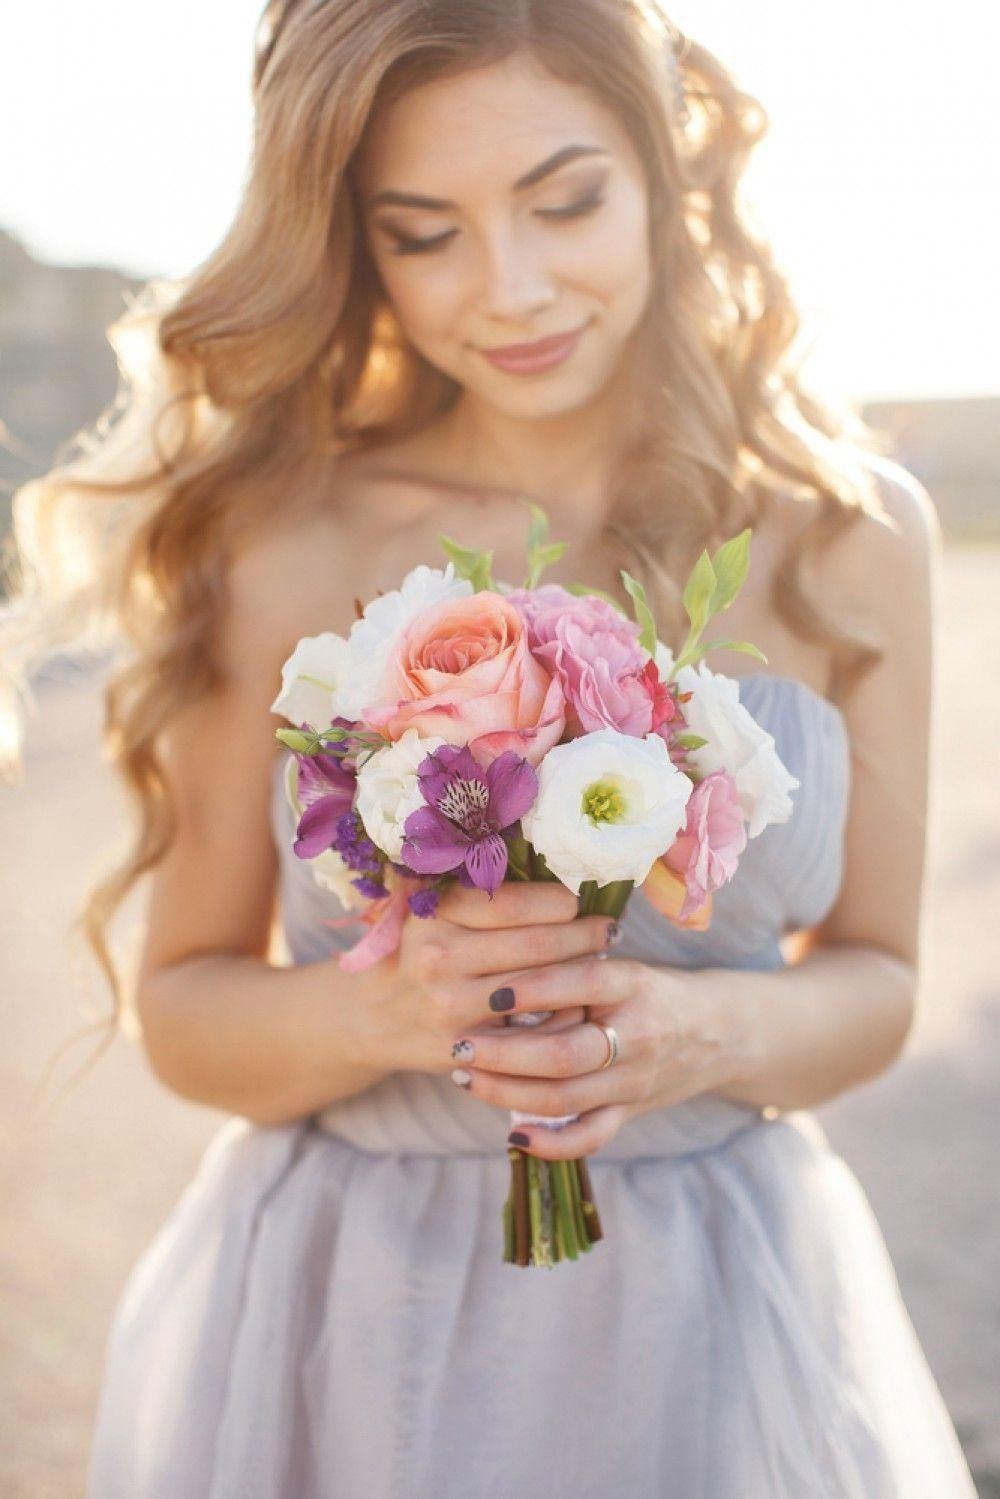 Bride in a grey dress holding a bouquet